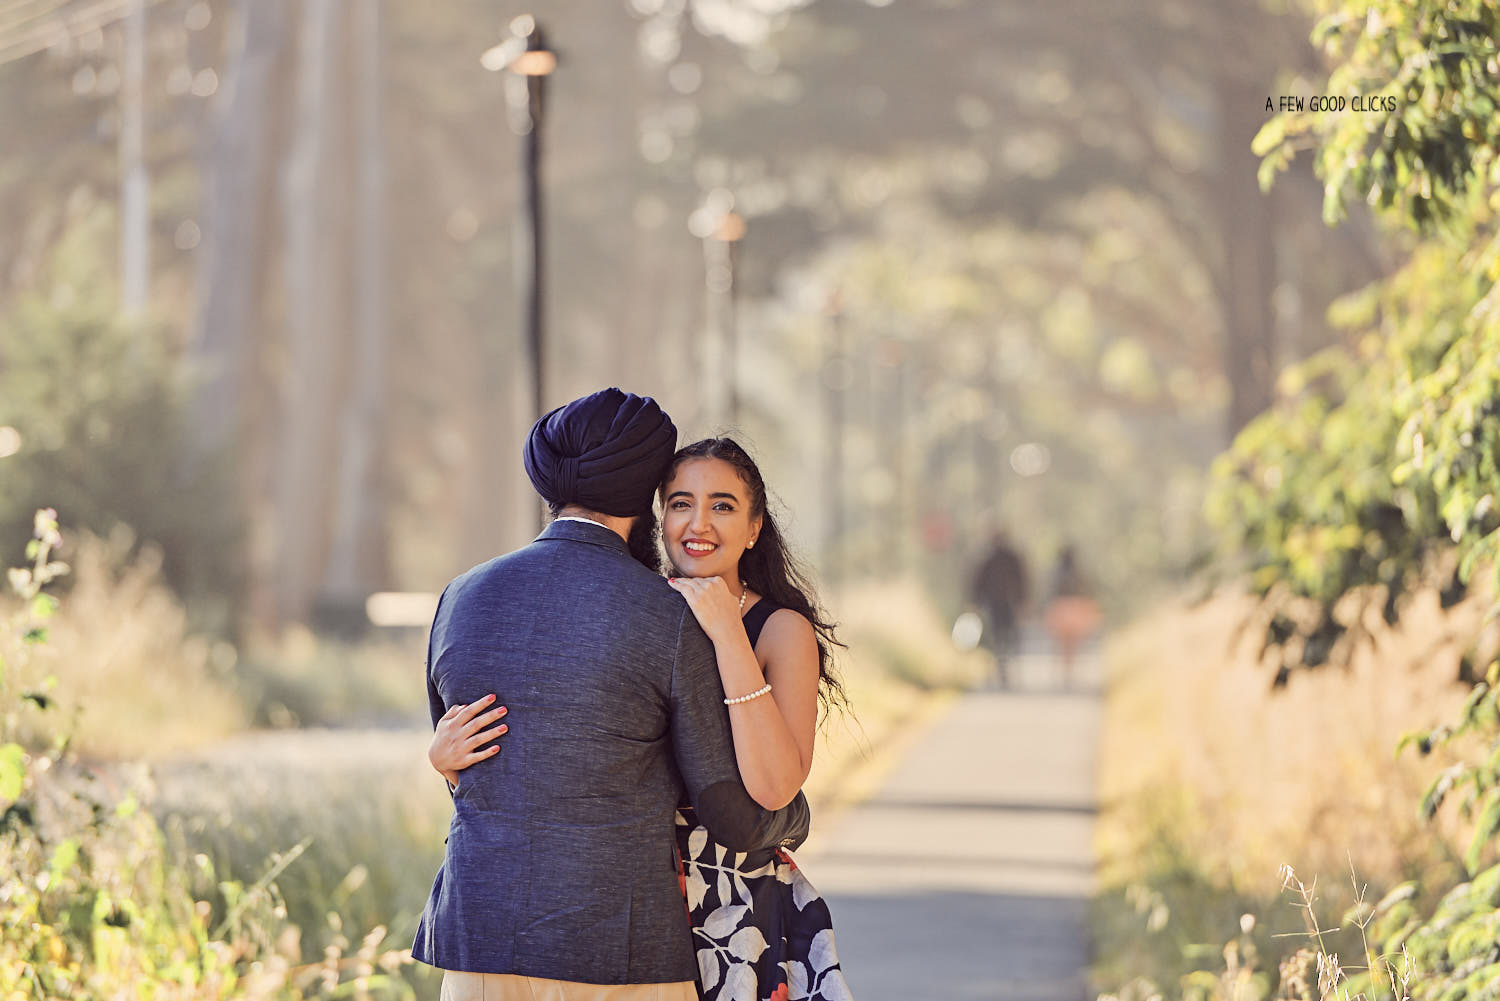 presidio-engagement-session-photography-san-francisco 160.jpg